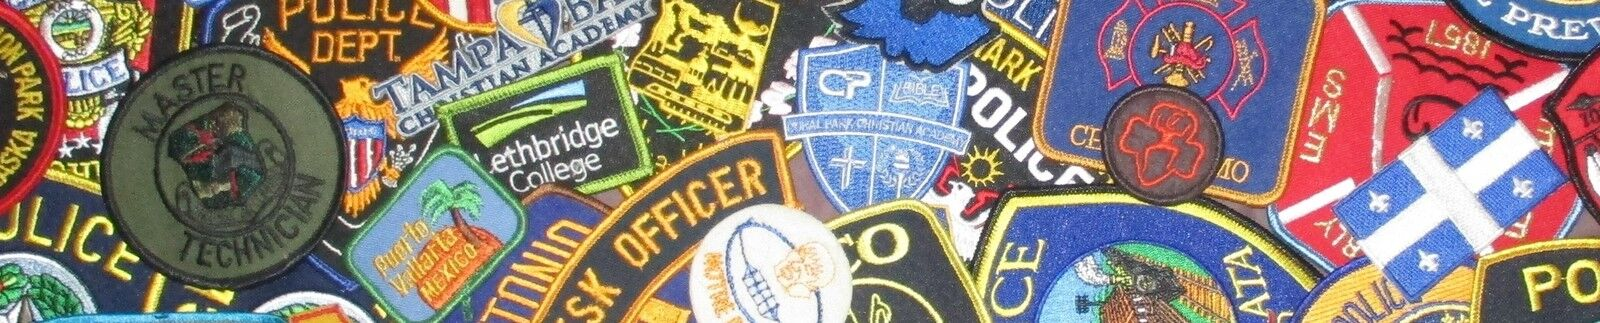 Beaumont Patches